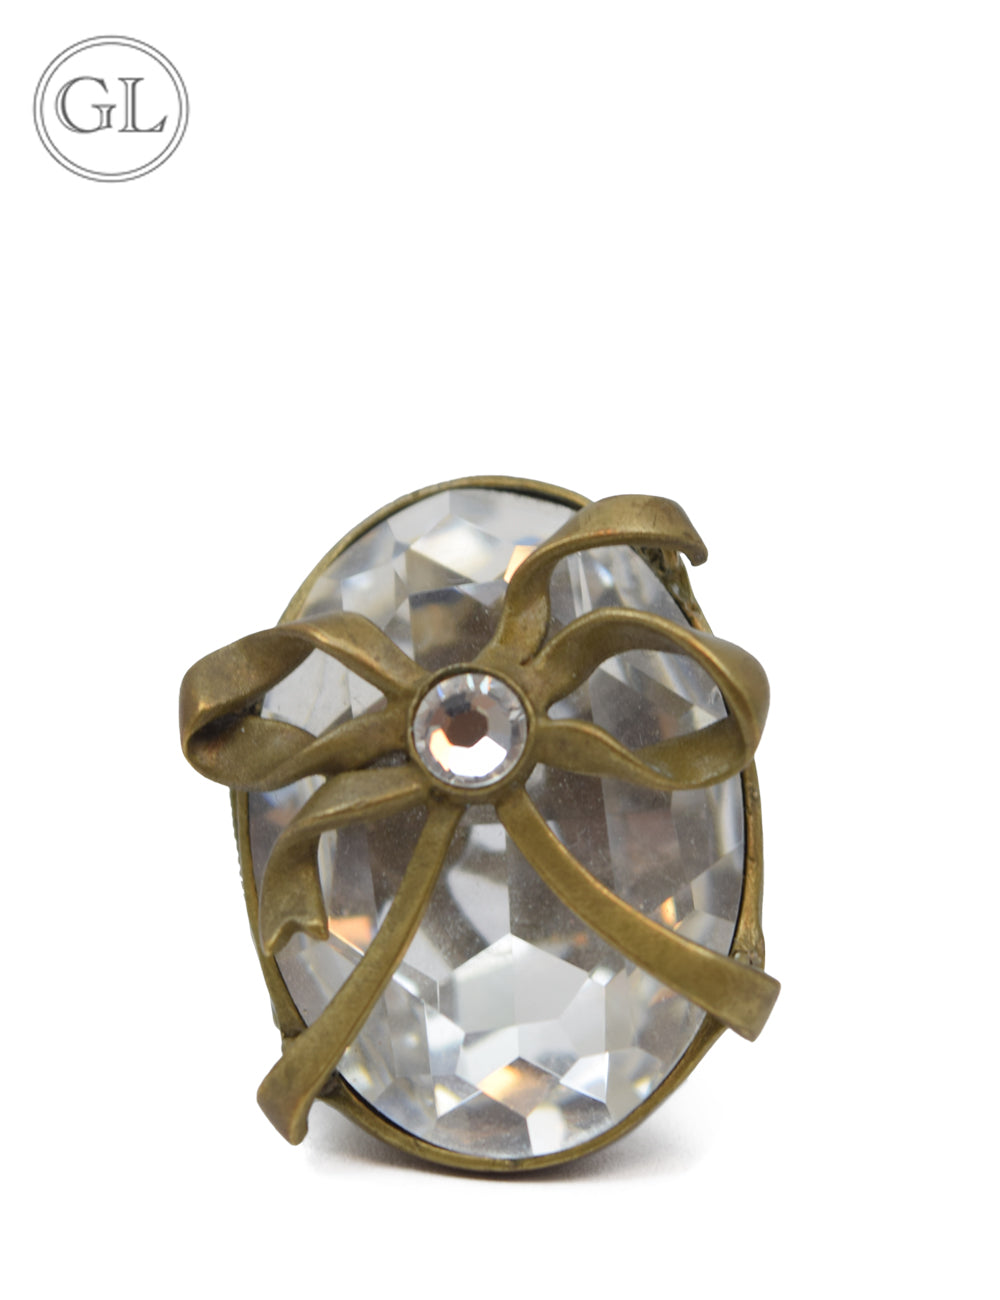 Christian Dior Crystal Brass Ring - 6